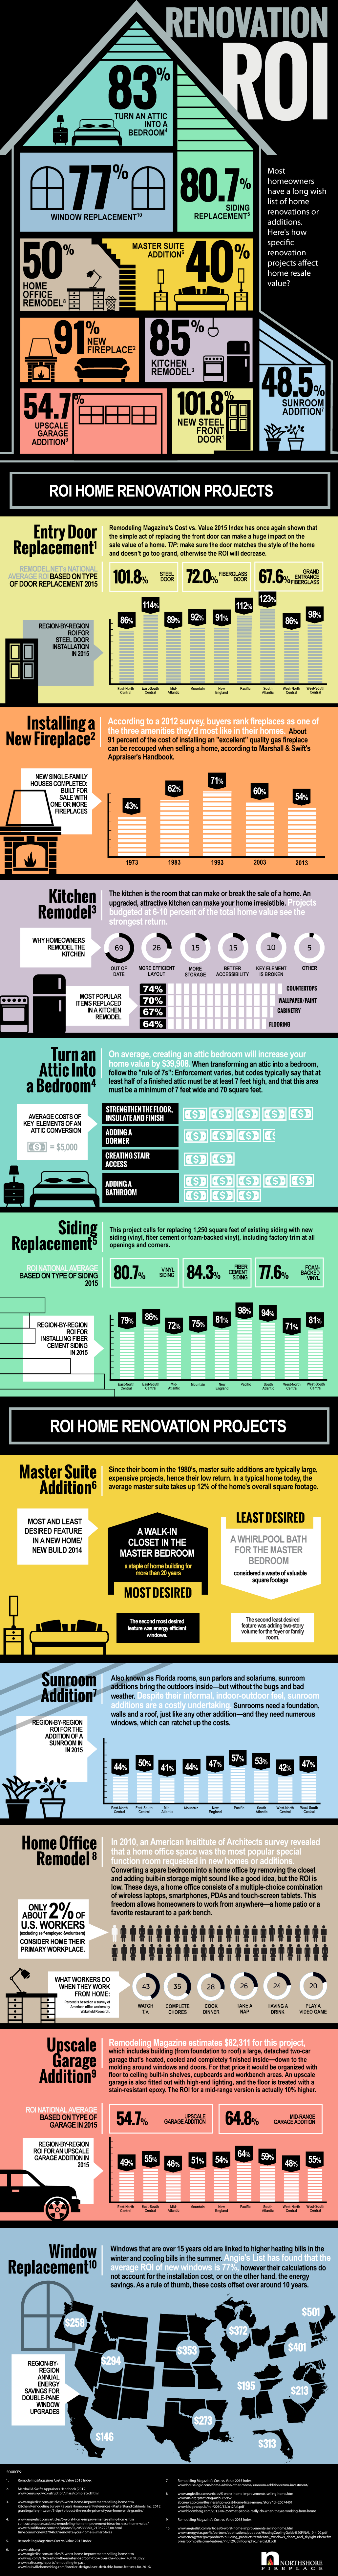 home remodeling renovation roi infographic from Klamco interior design and remodeling